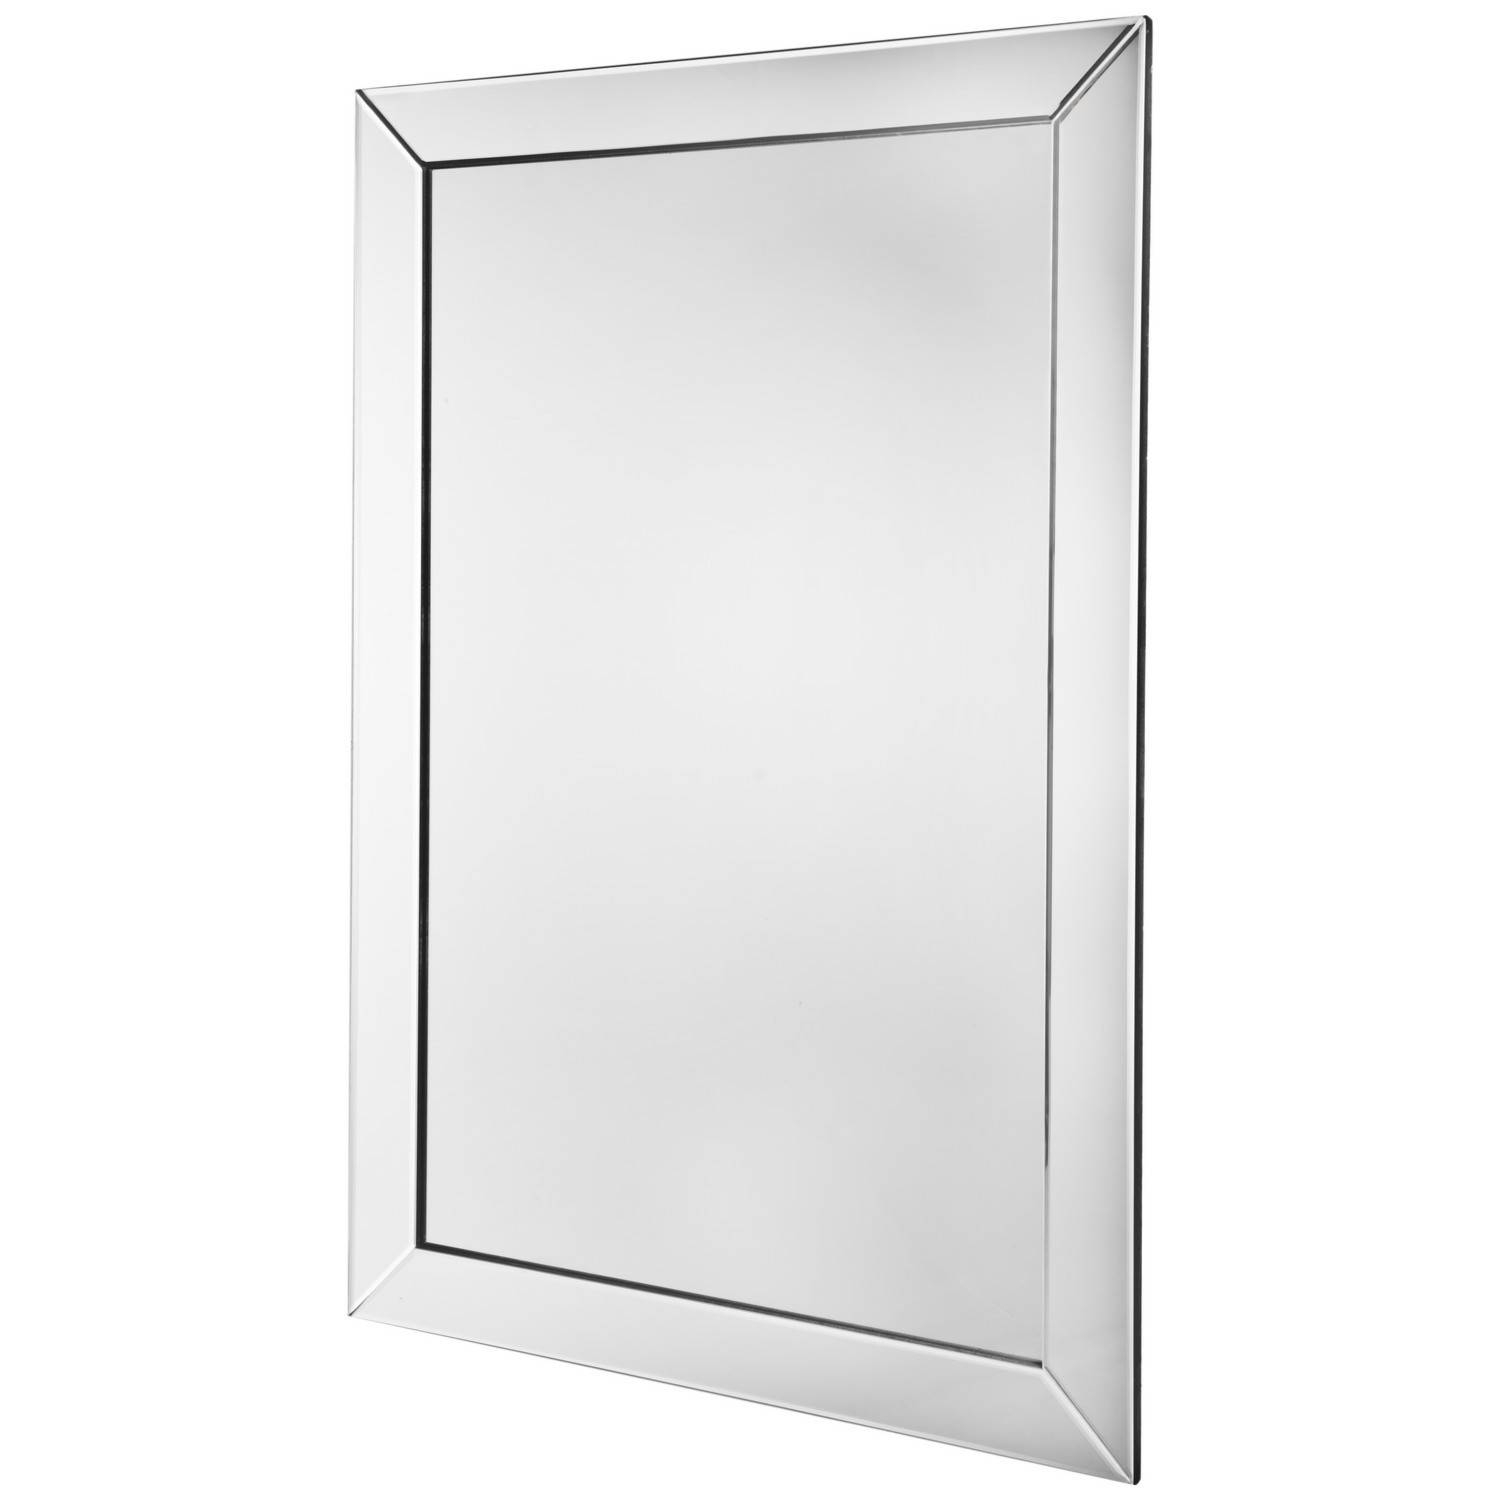 Hamilton Bevelled Mirror regarding Large Bevelled Mirrors (Image 10 of 25)